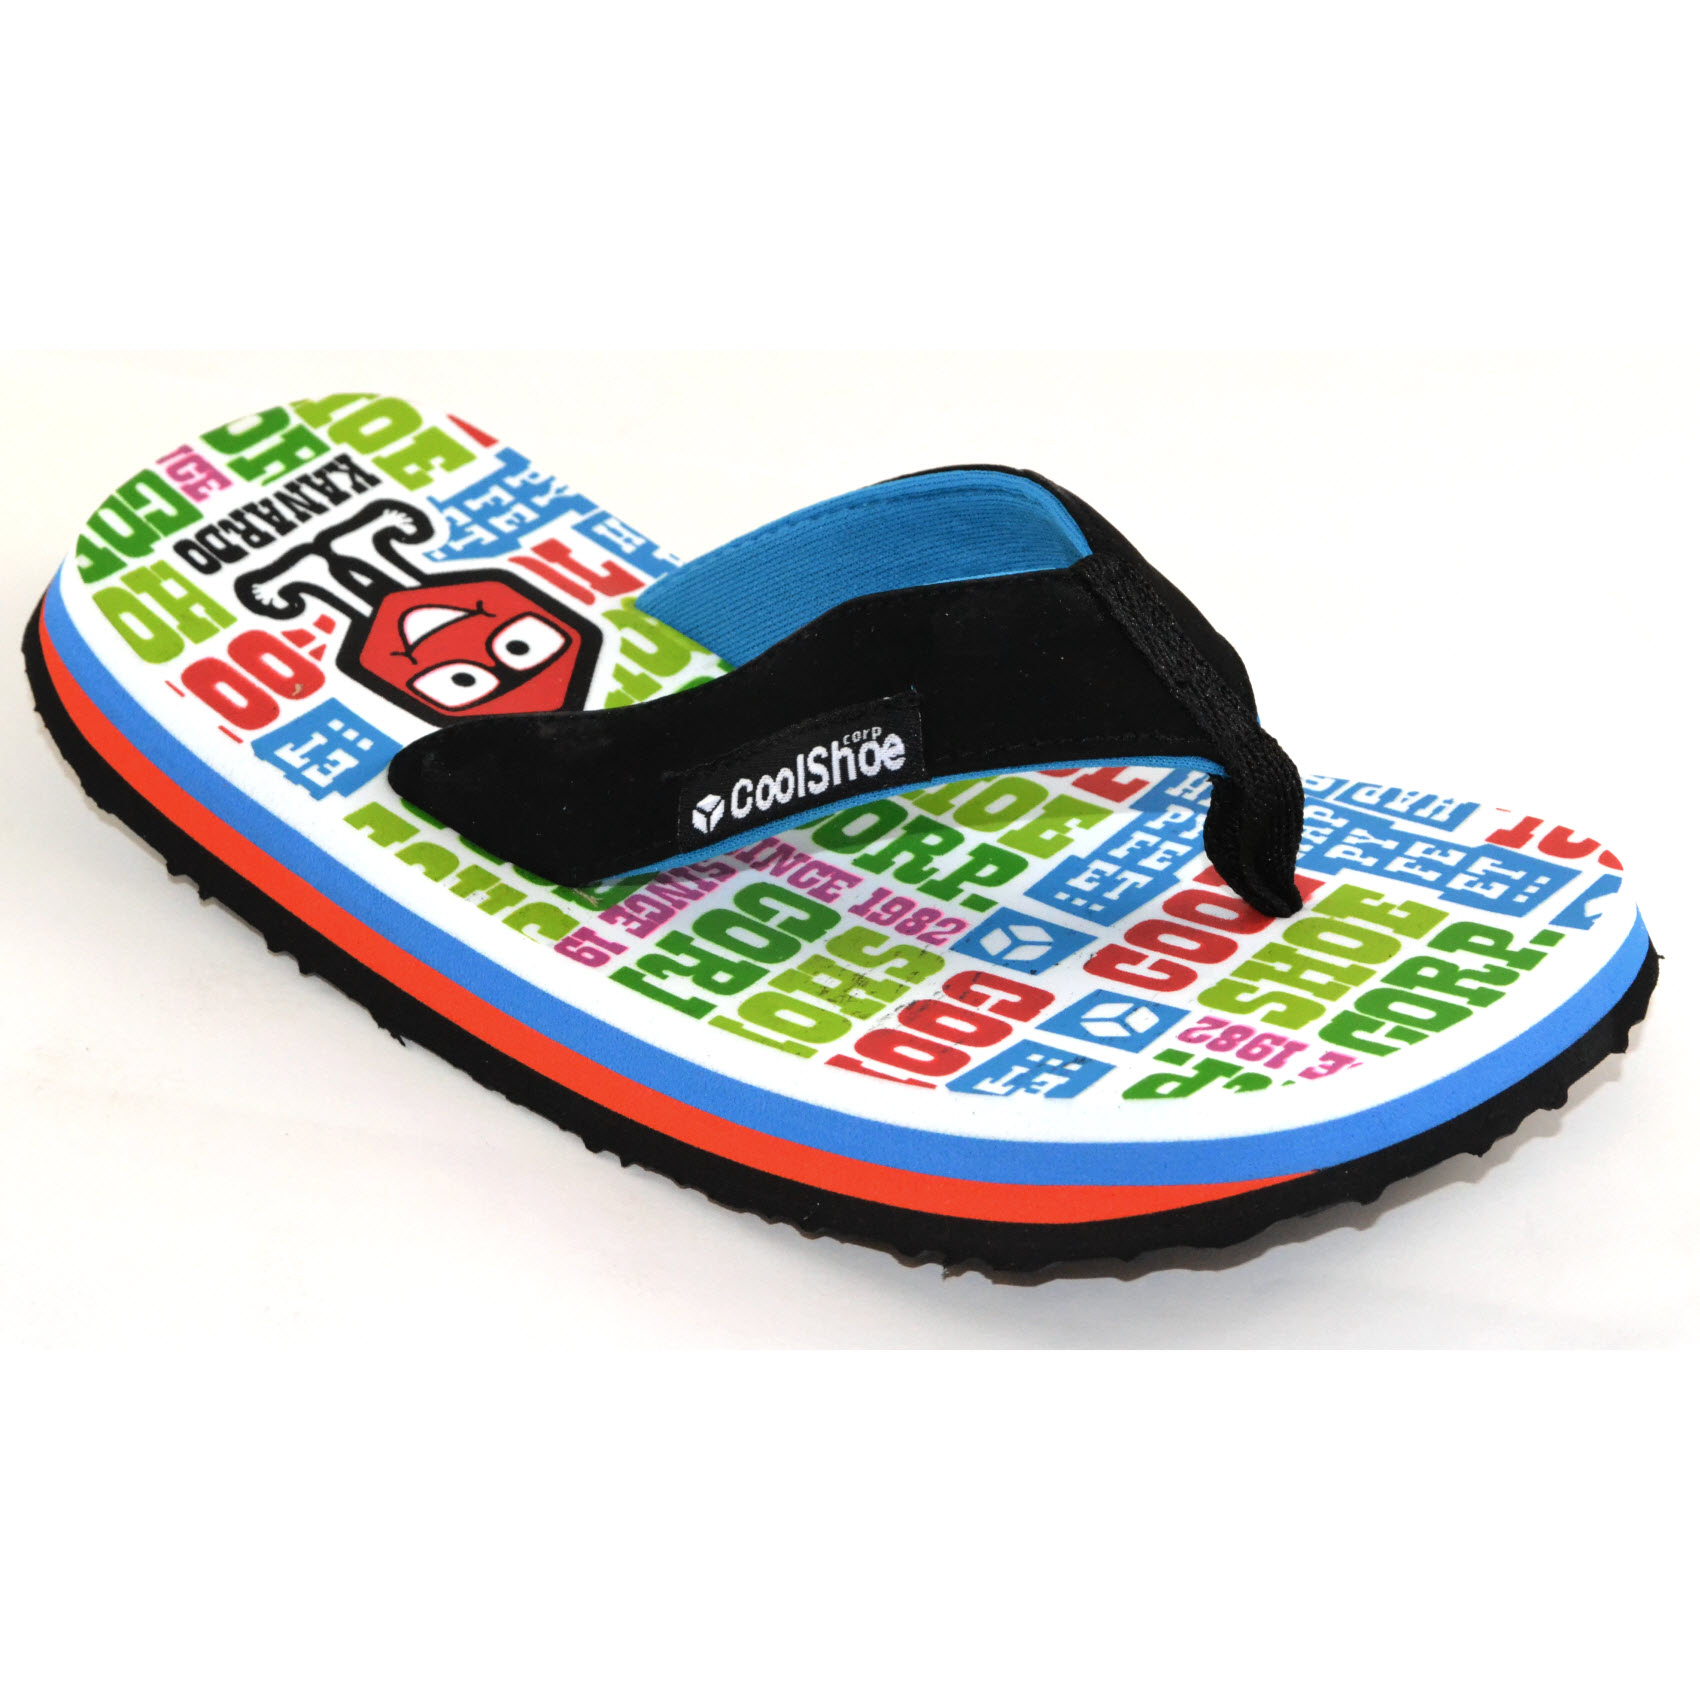 cool shoe happy feet boys flip flops sandals children. Black Bedroom Furniture Sets. Home Design Ideas